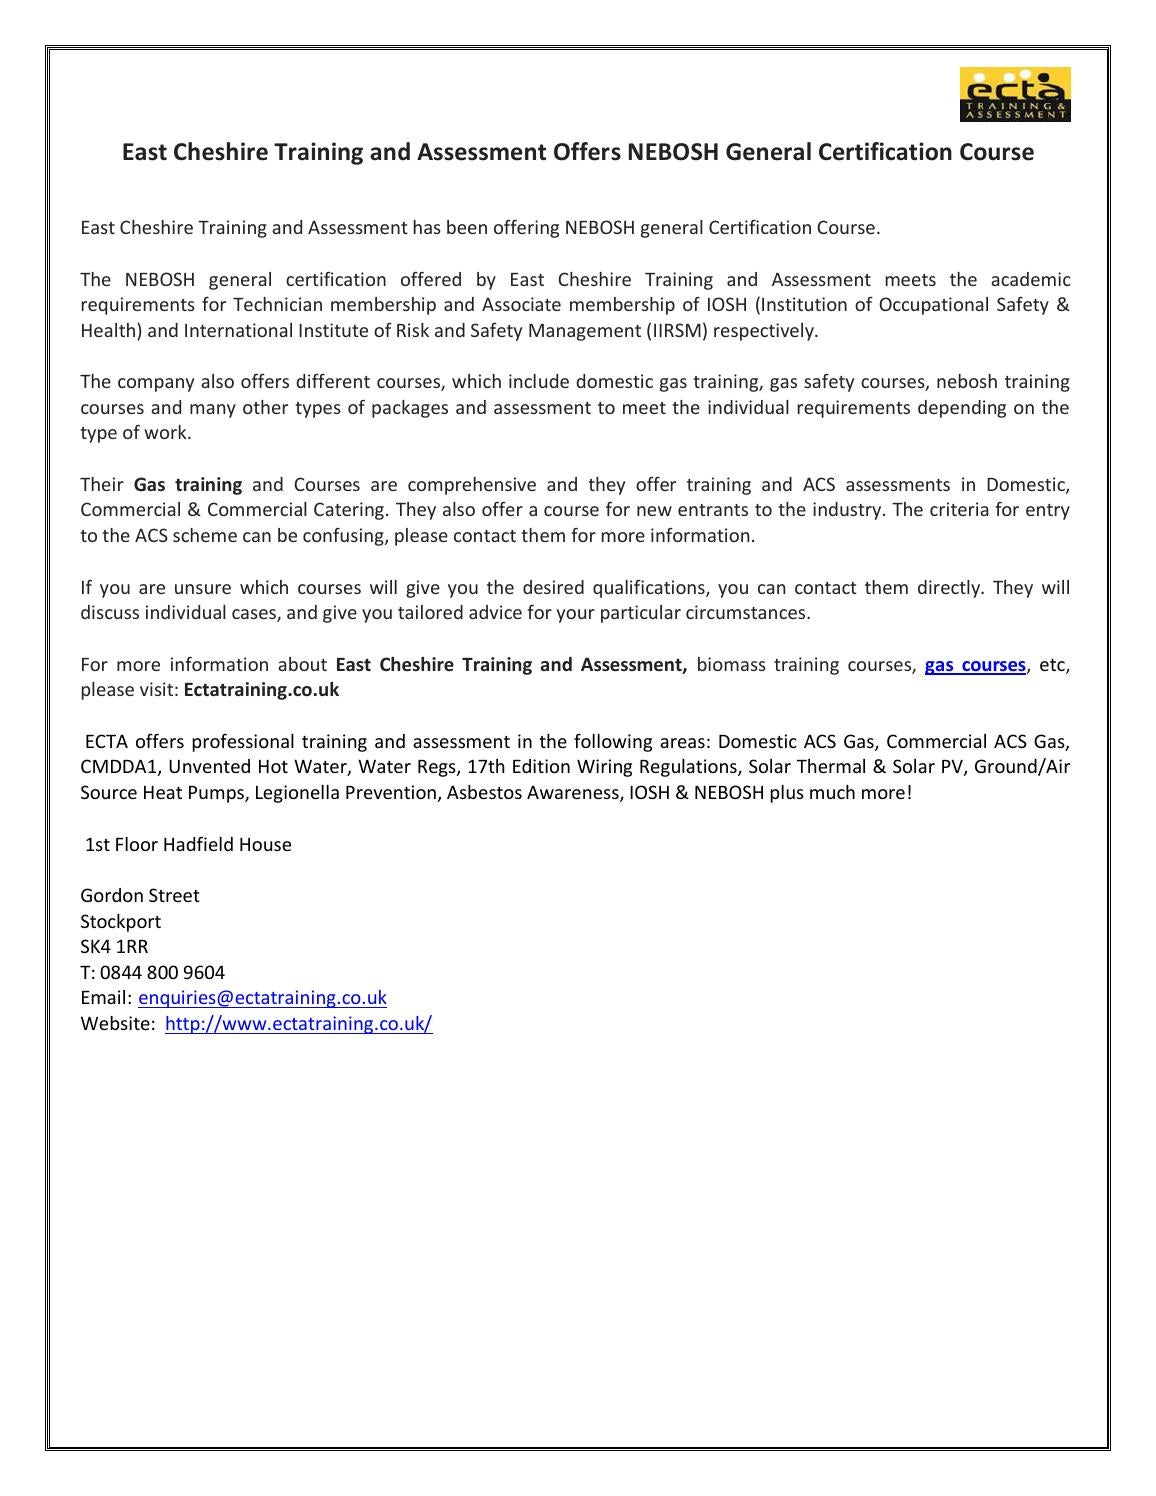 East Cheshire Training And Assessment Offers Nebosh General House Wiring Qualifications Certification Course By Ecta Issuu